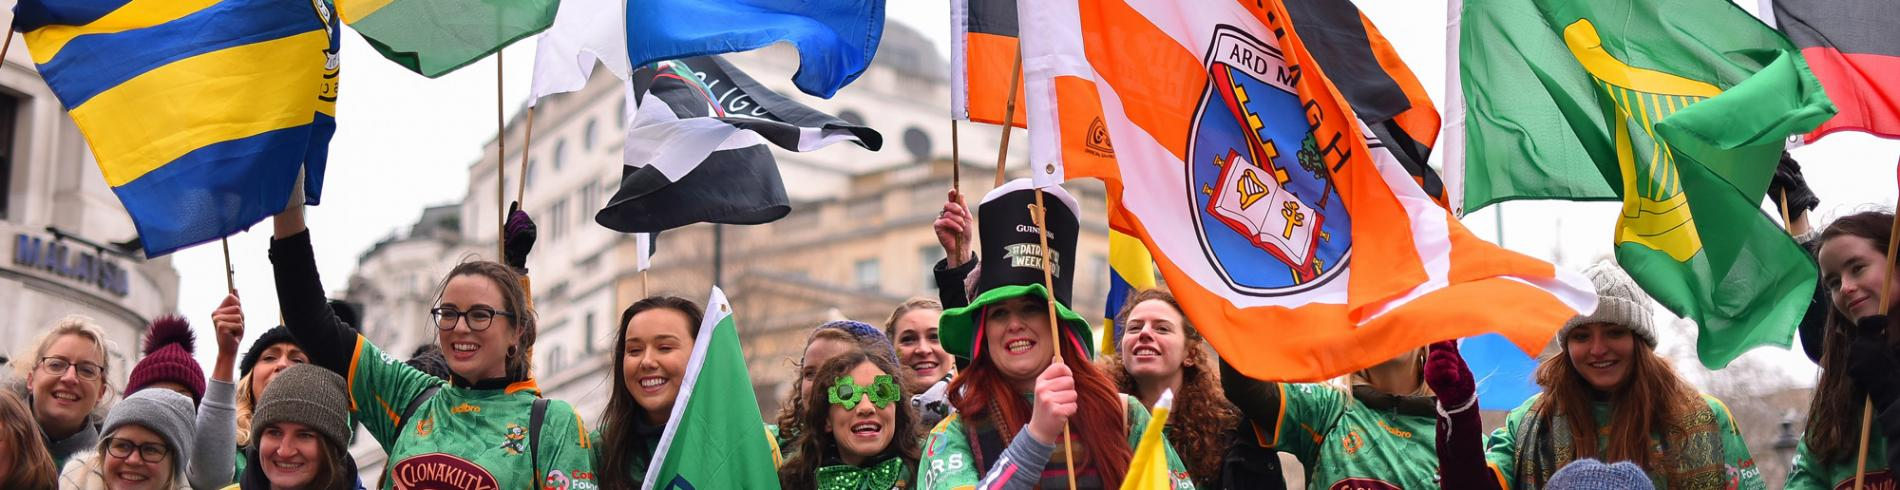 St Patrick's Day flags